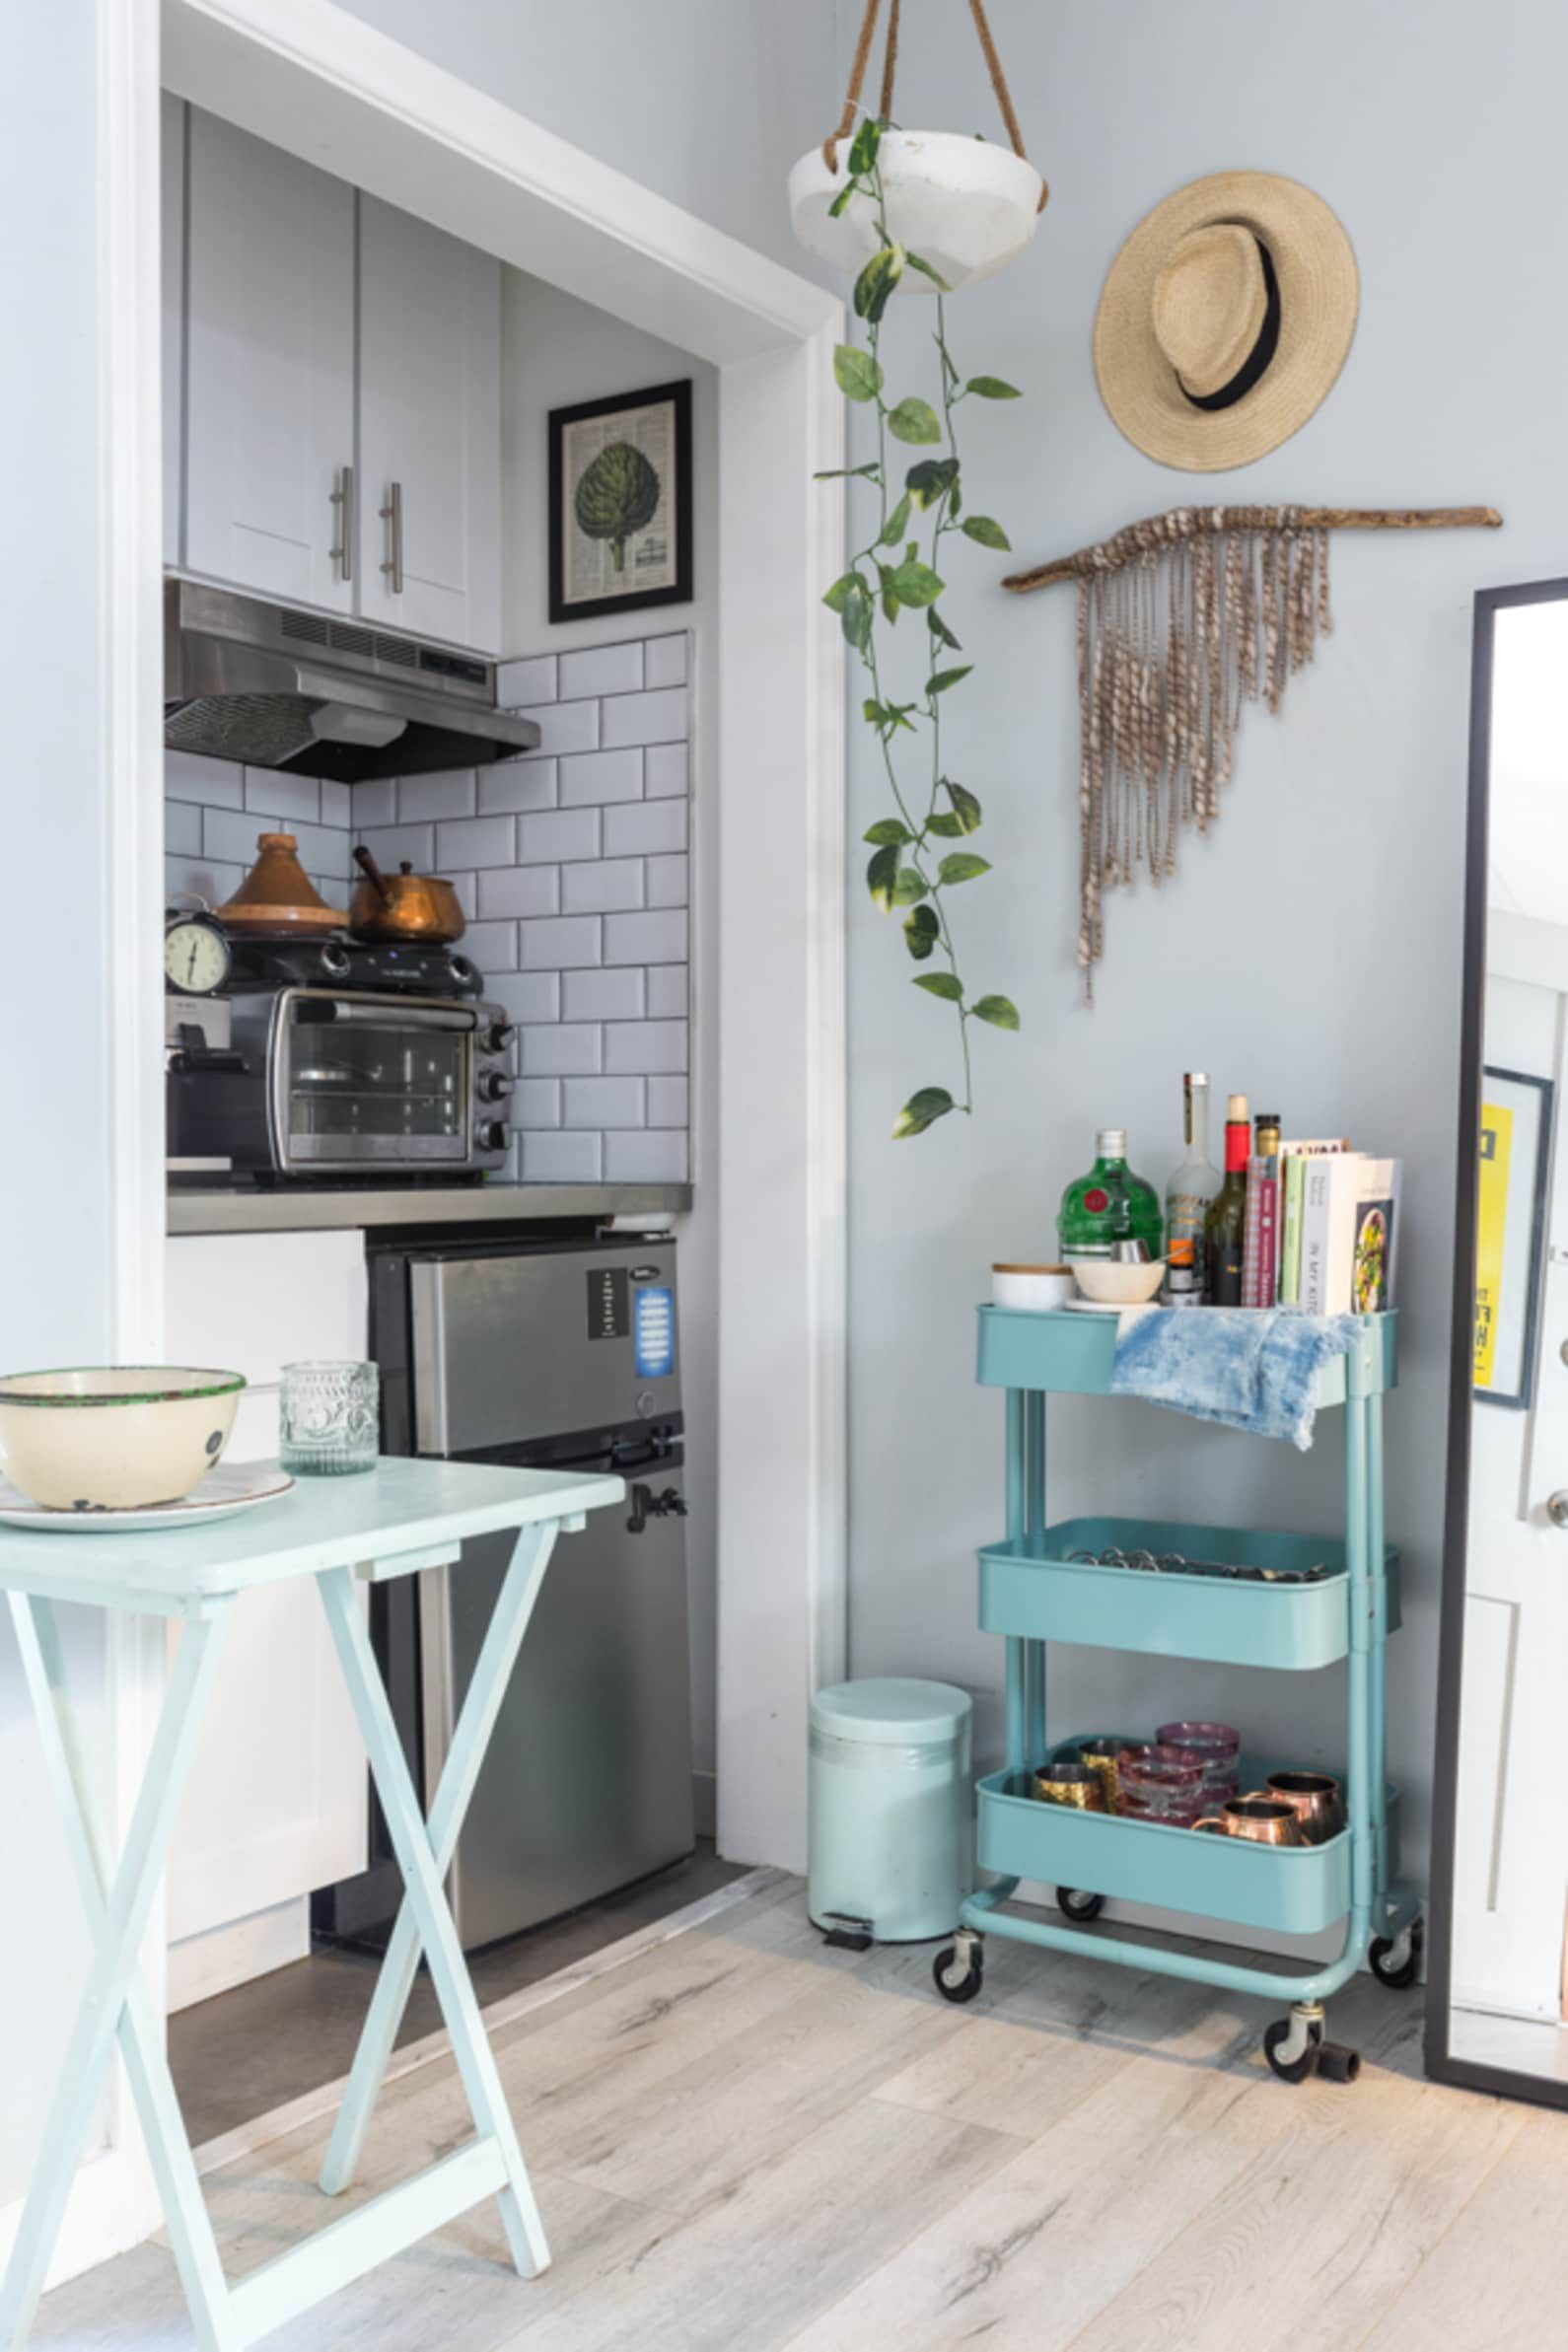 Small Living Room Apartment Therapy: This Teeny 250-Square-Foot L.A. Studio Feels So Much